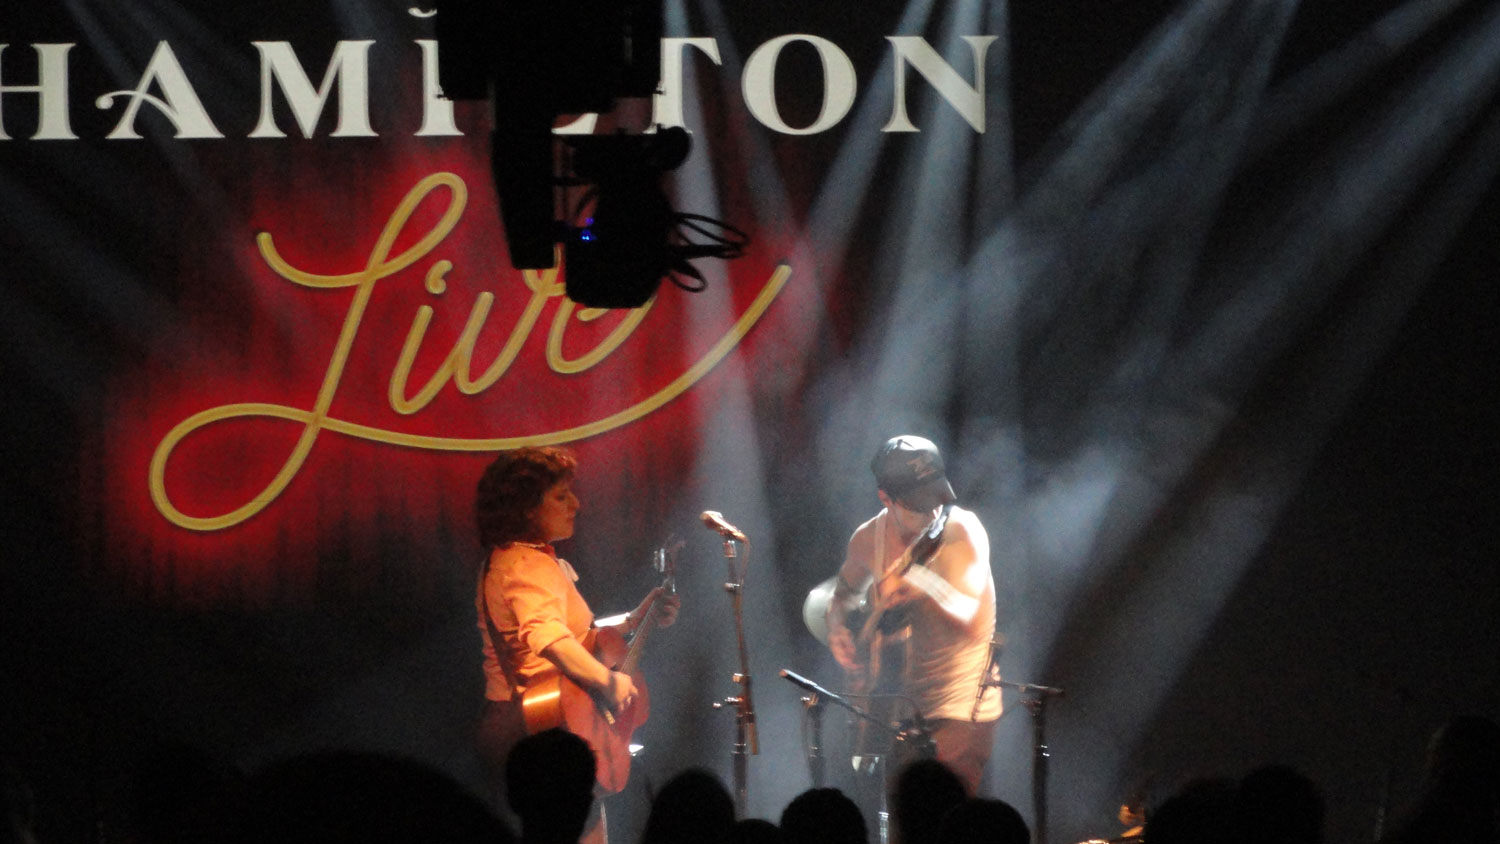 Farce the music concert review shovels and rope for Farcical antonym